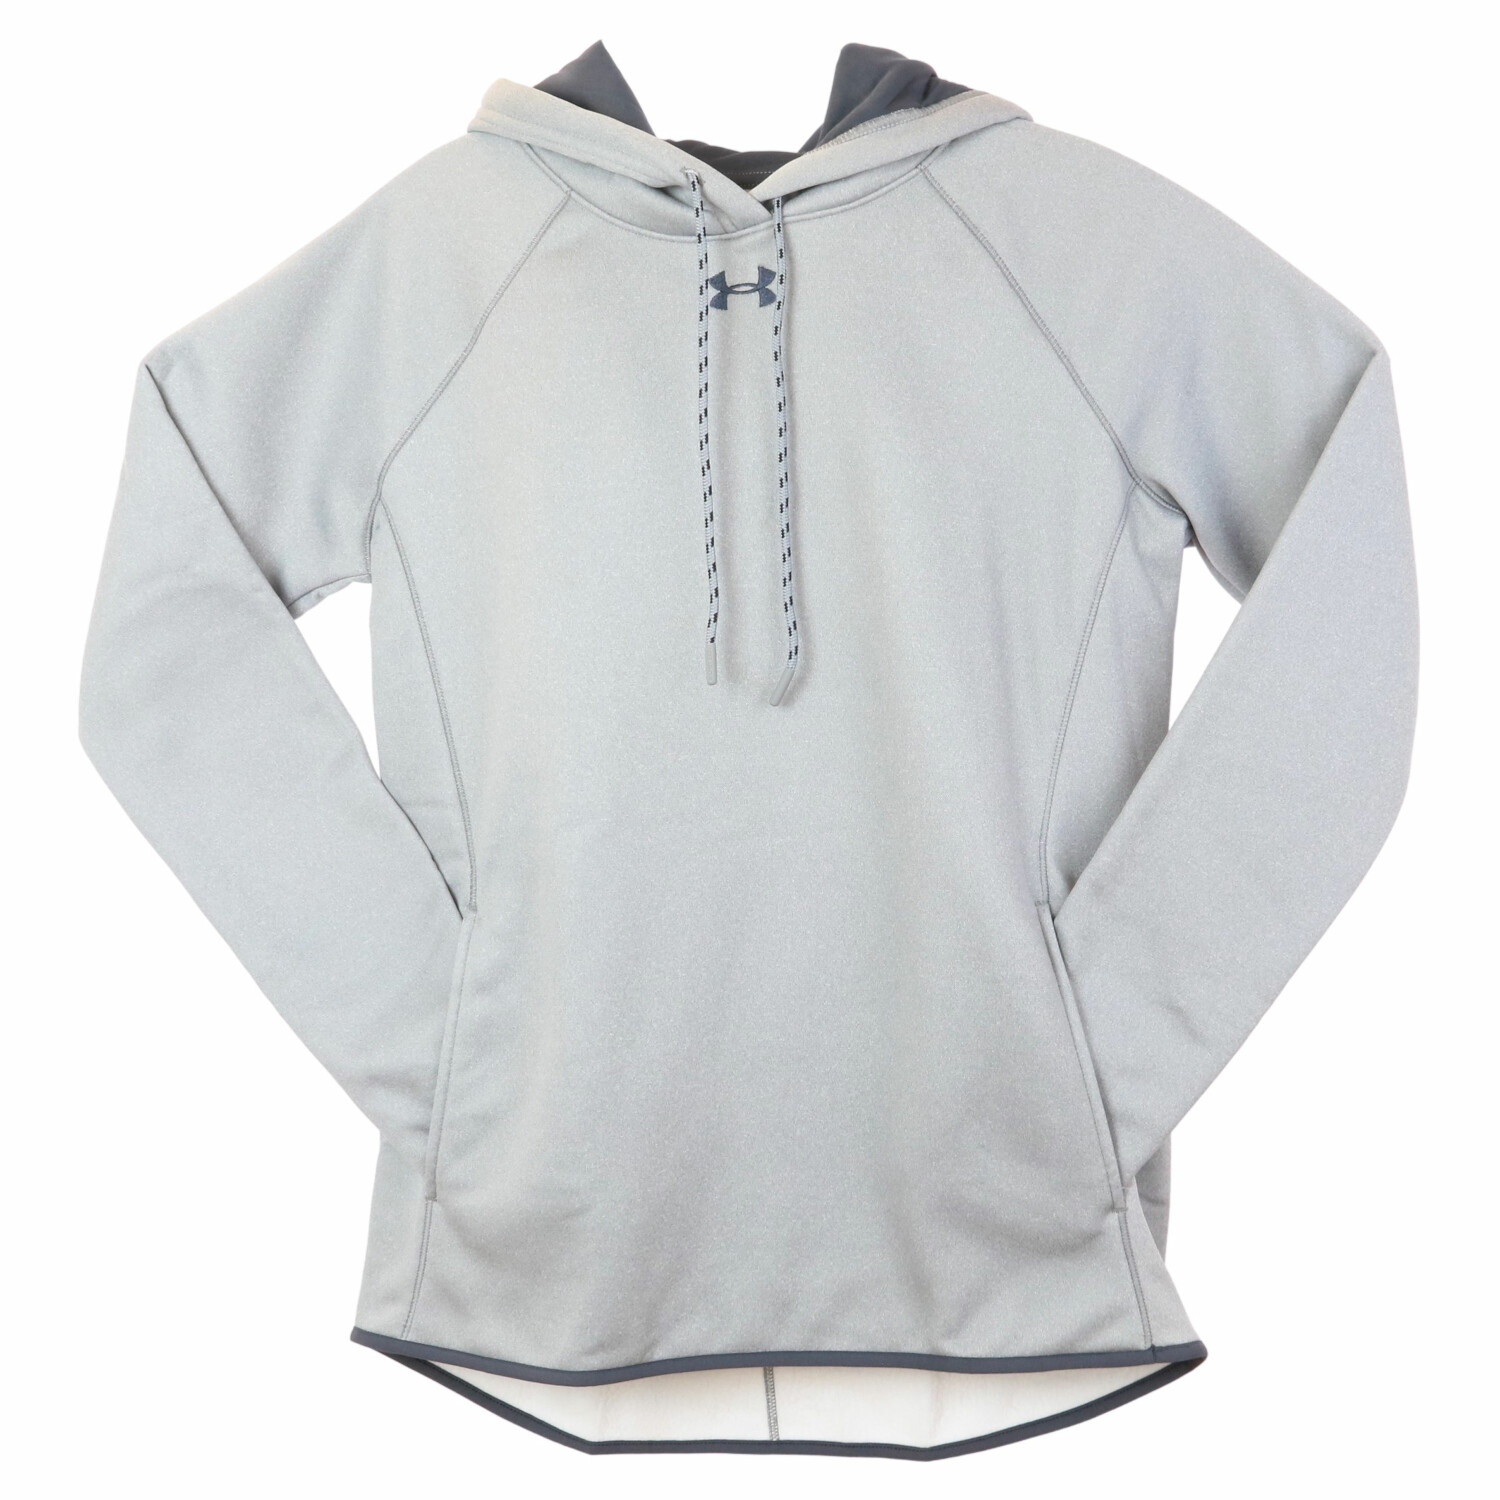 Under Armour Men's True Gray Heather / Stealth Double Threat Fleece Active Hoody - M